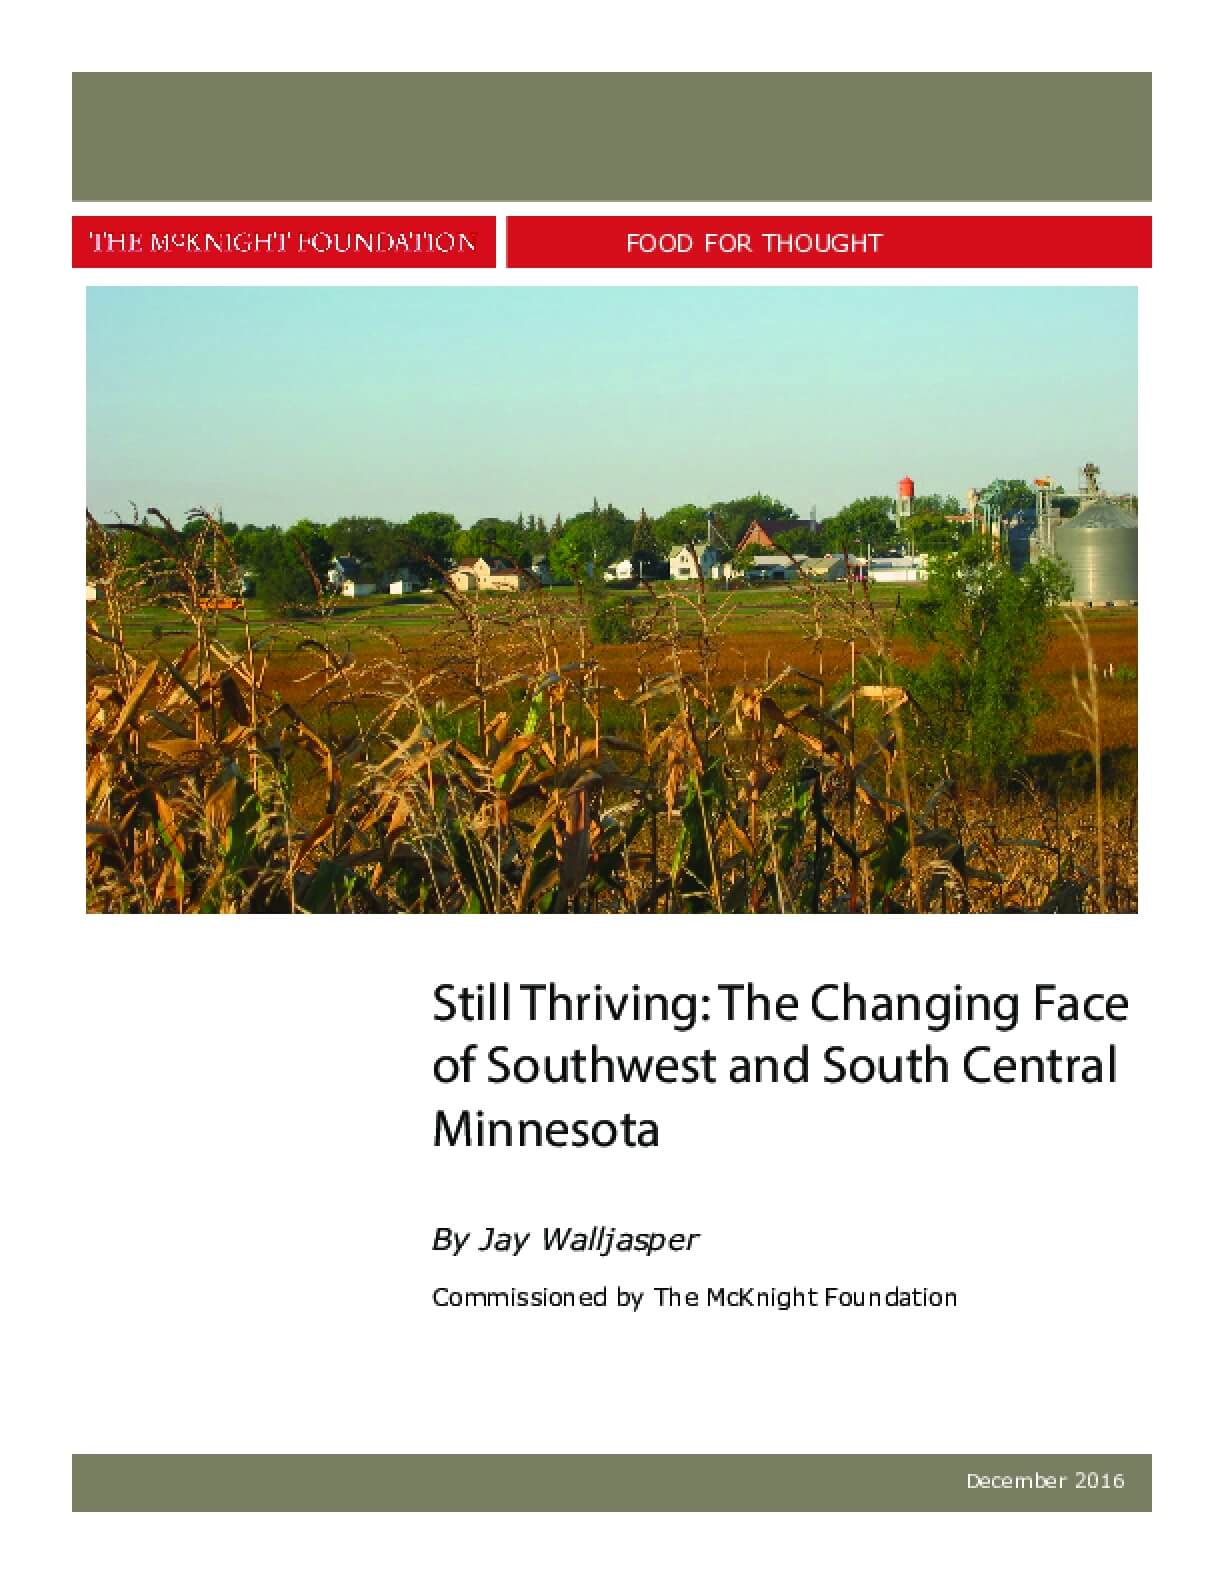 Still Thriving: The Changing Face of Southwest and South Central Minnesota